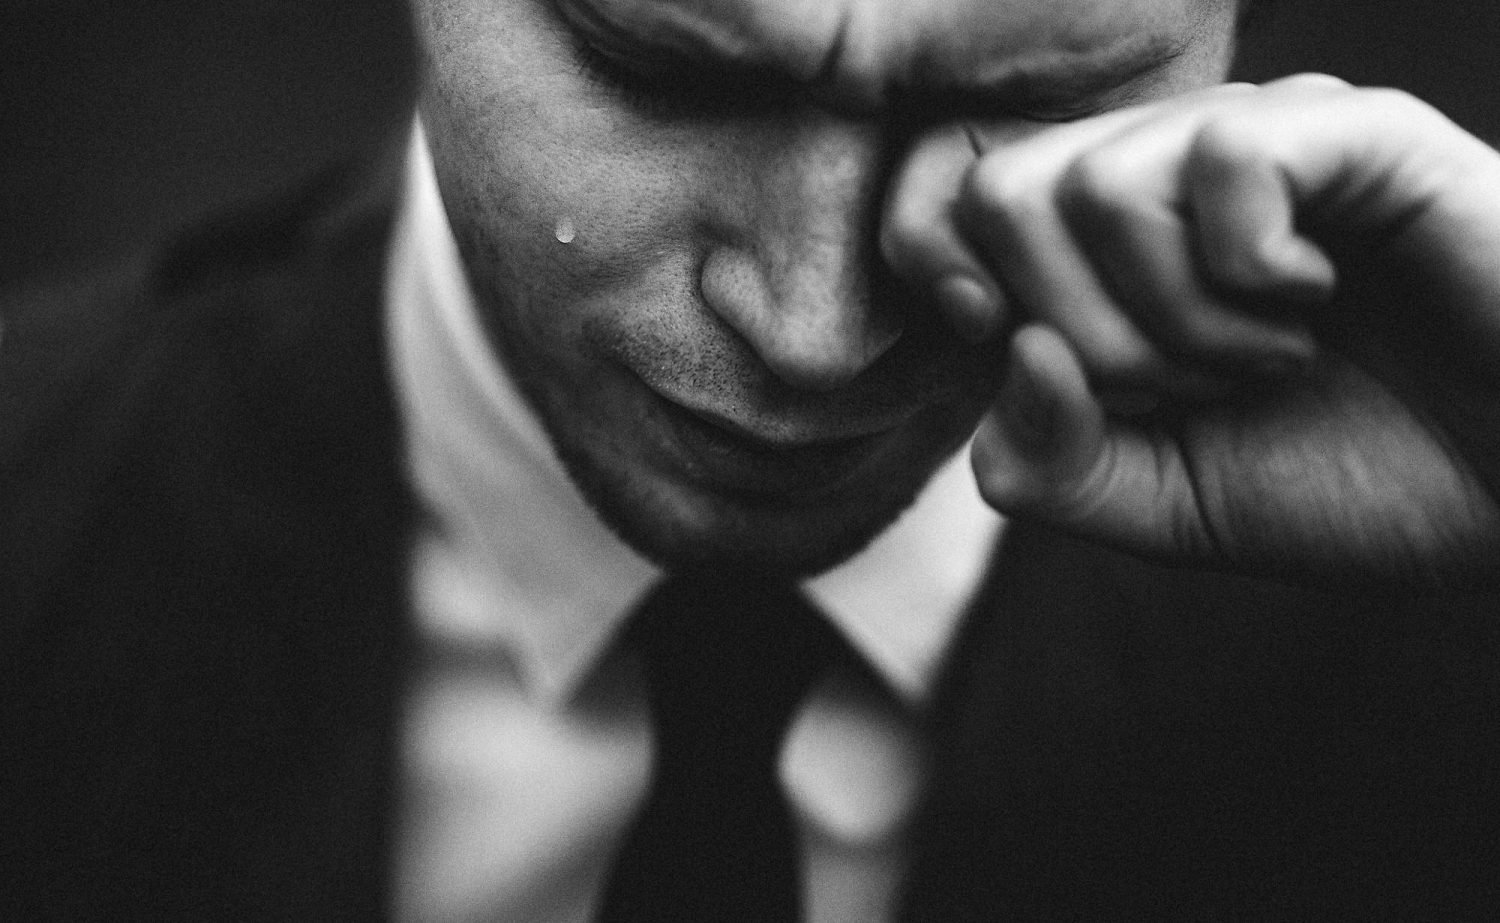 Man crying in business suit